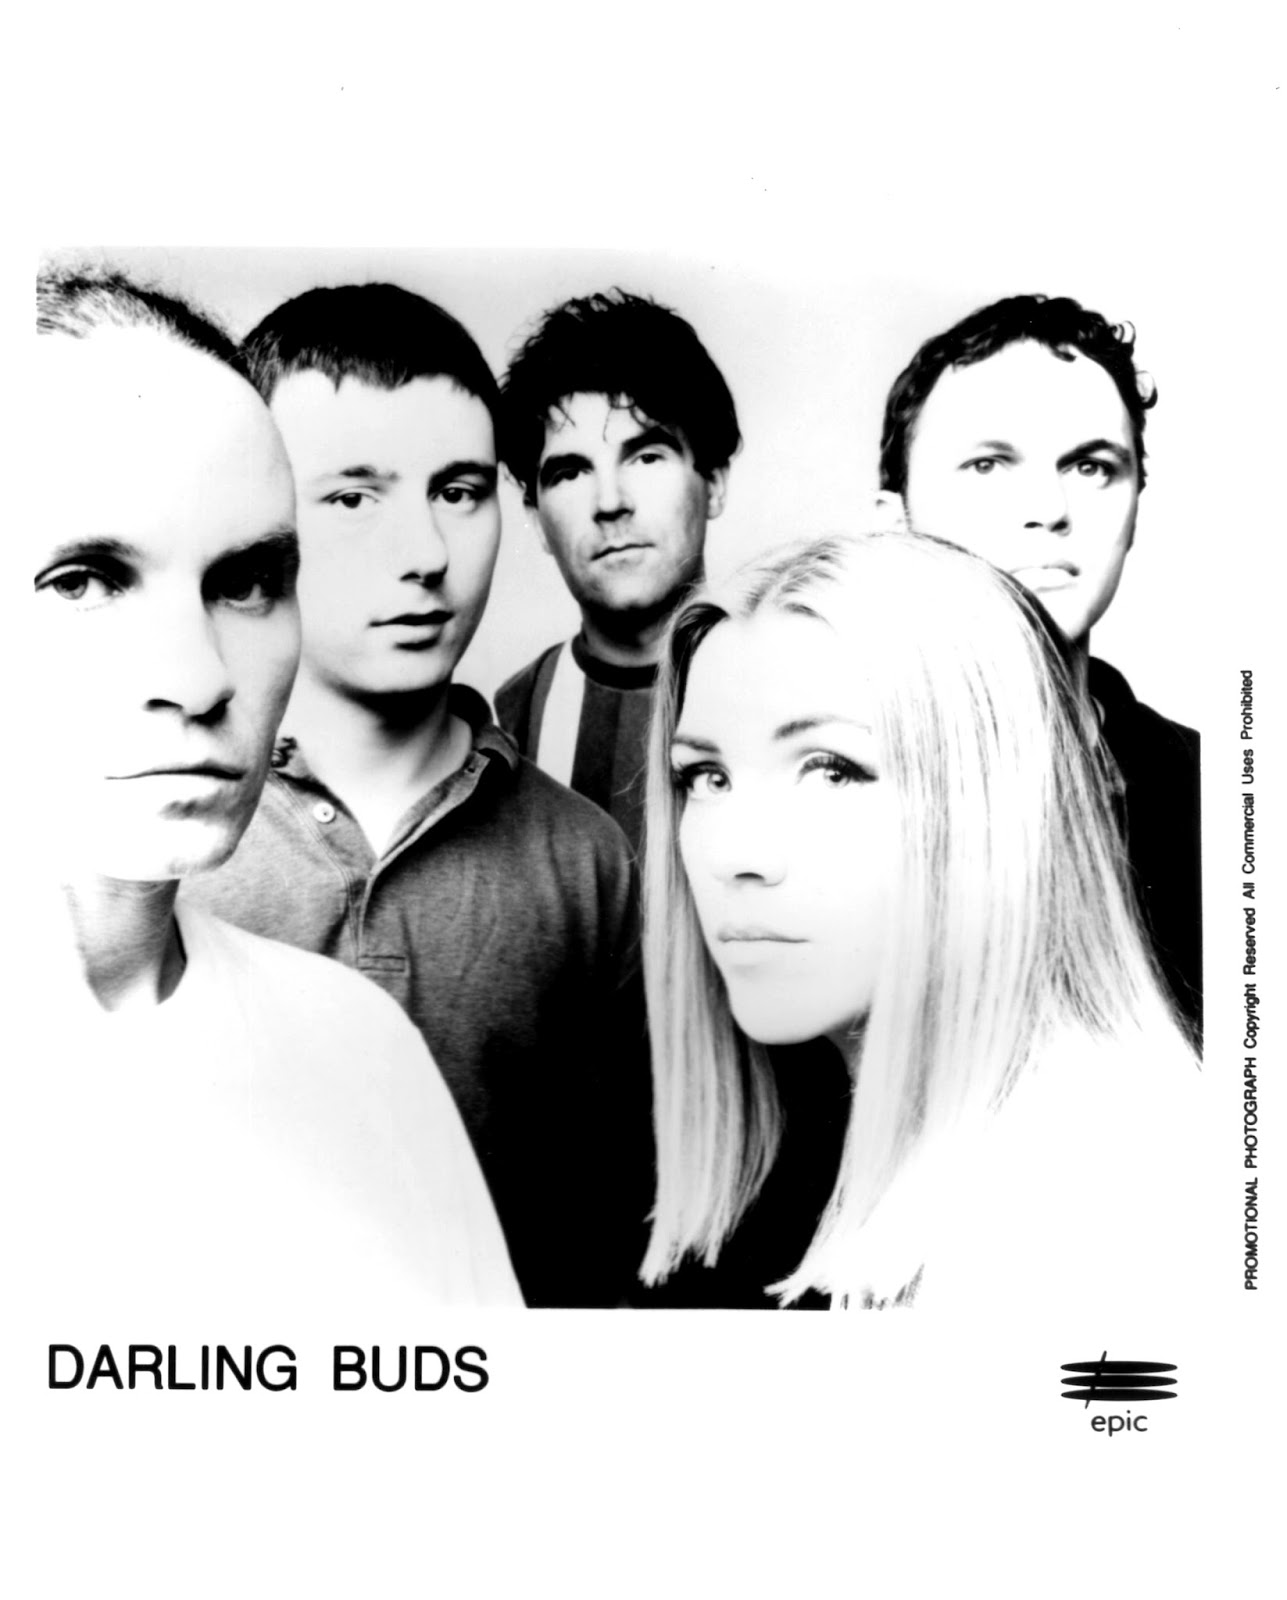 The darling buds erotica